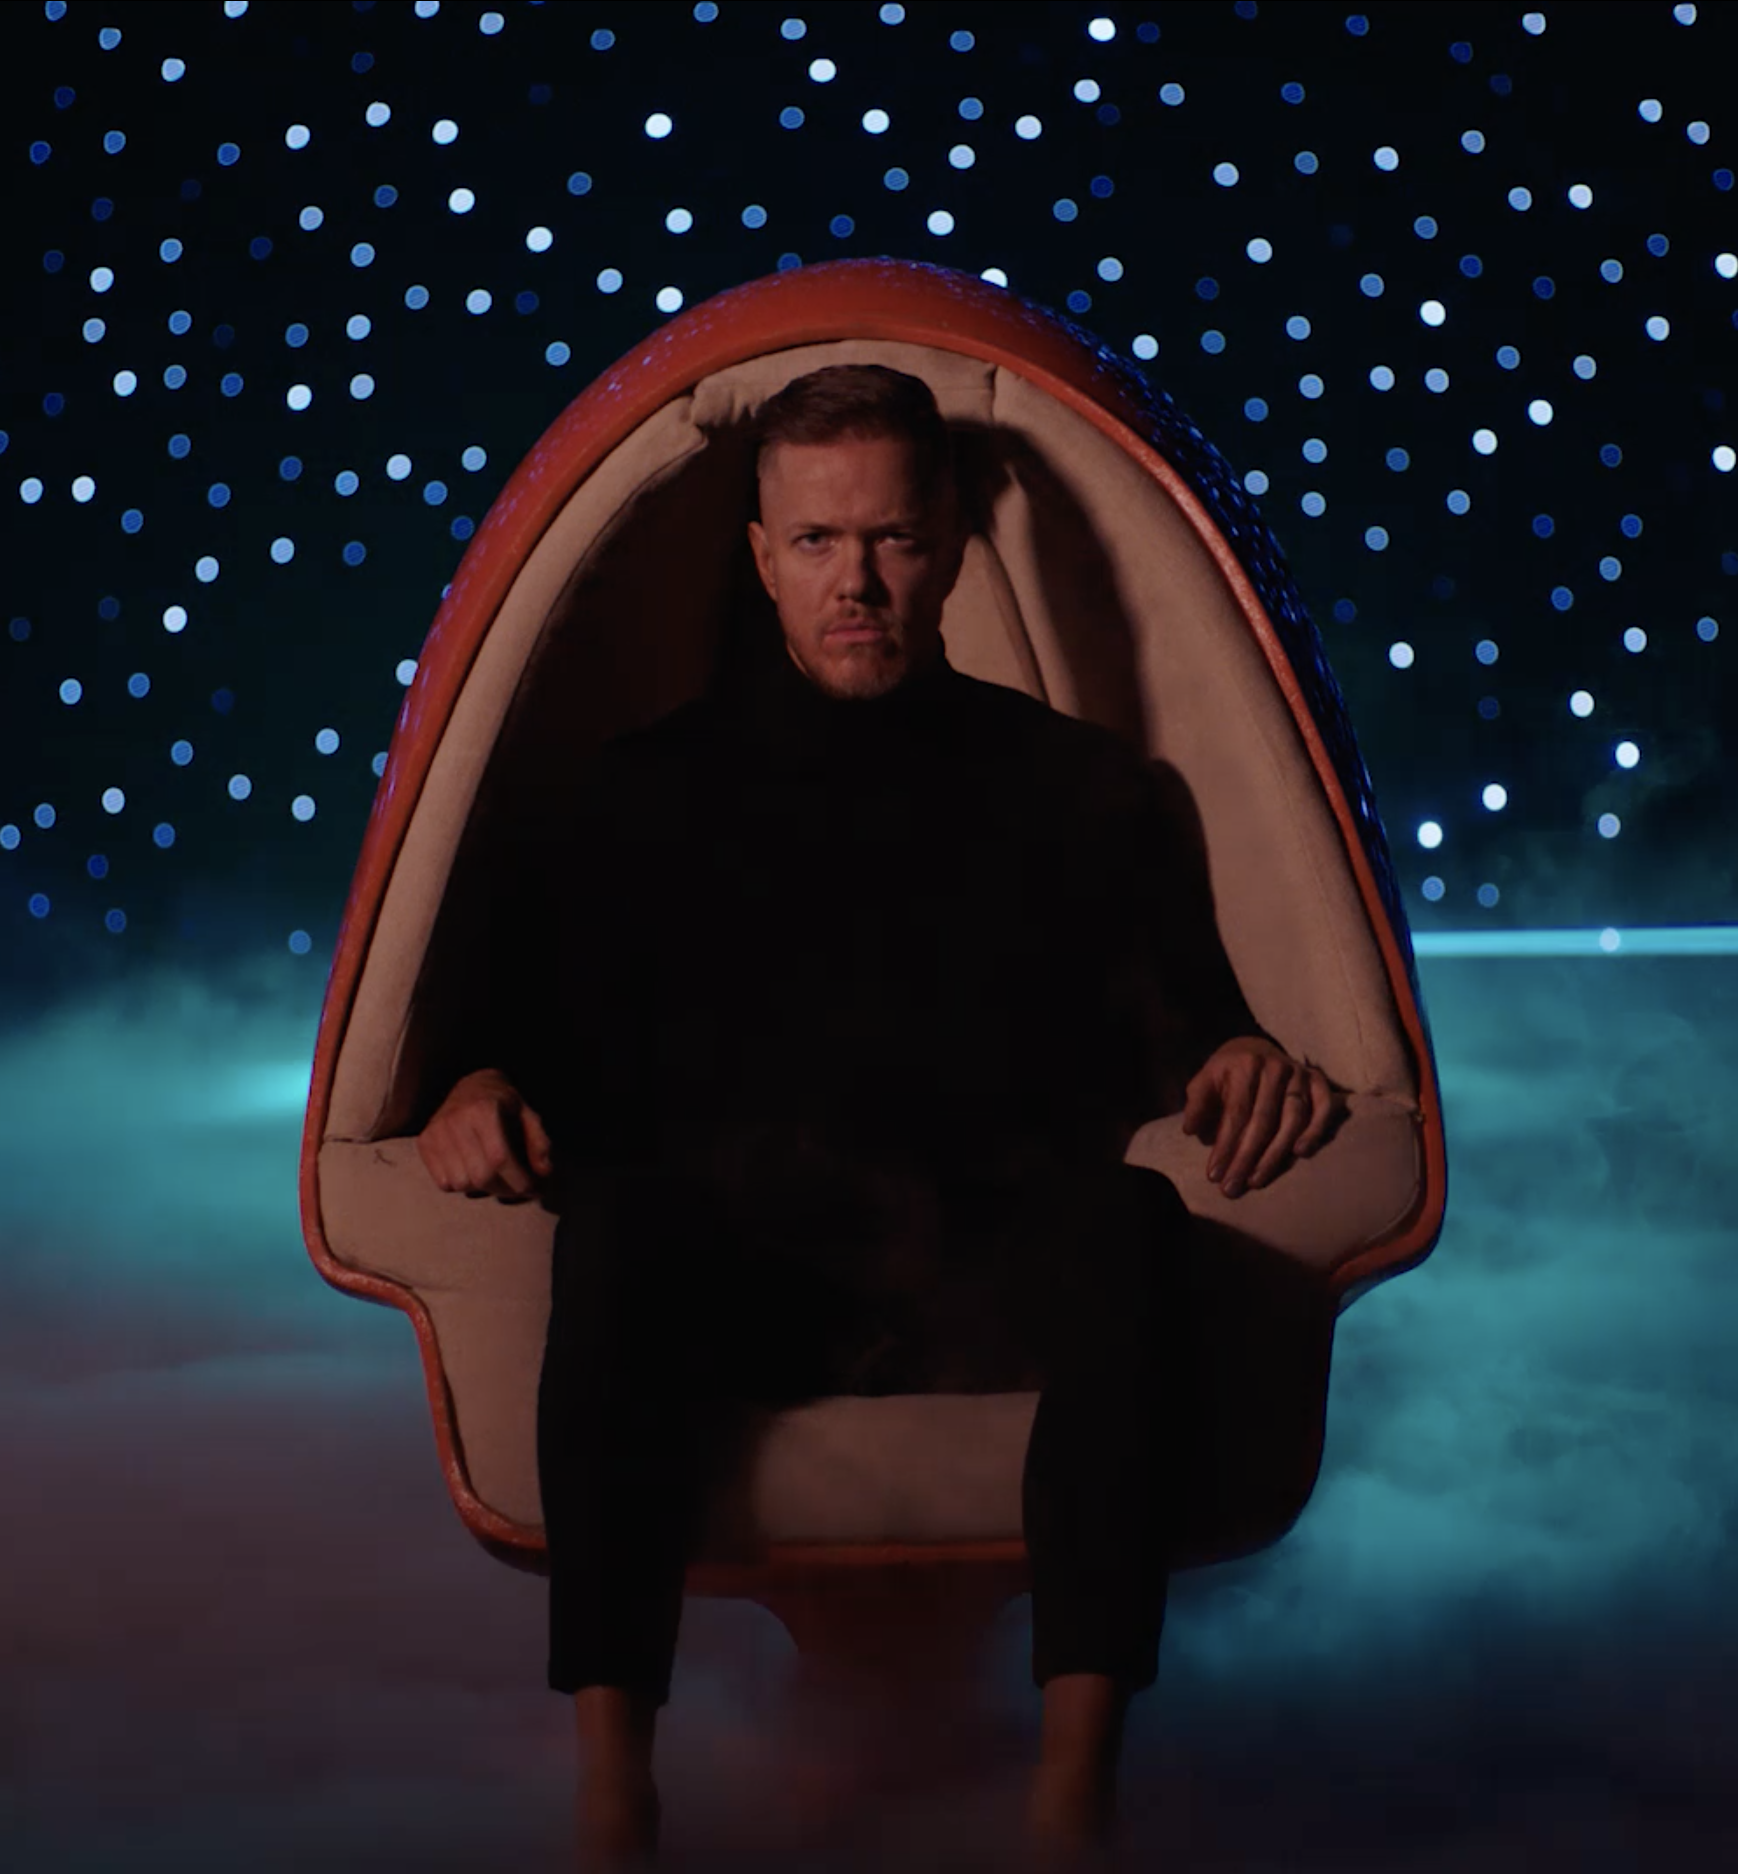 Dan Reynolds sitting in retro chair floating over earth.